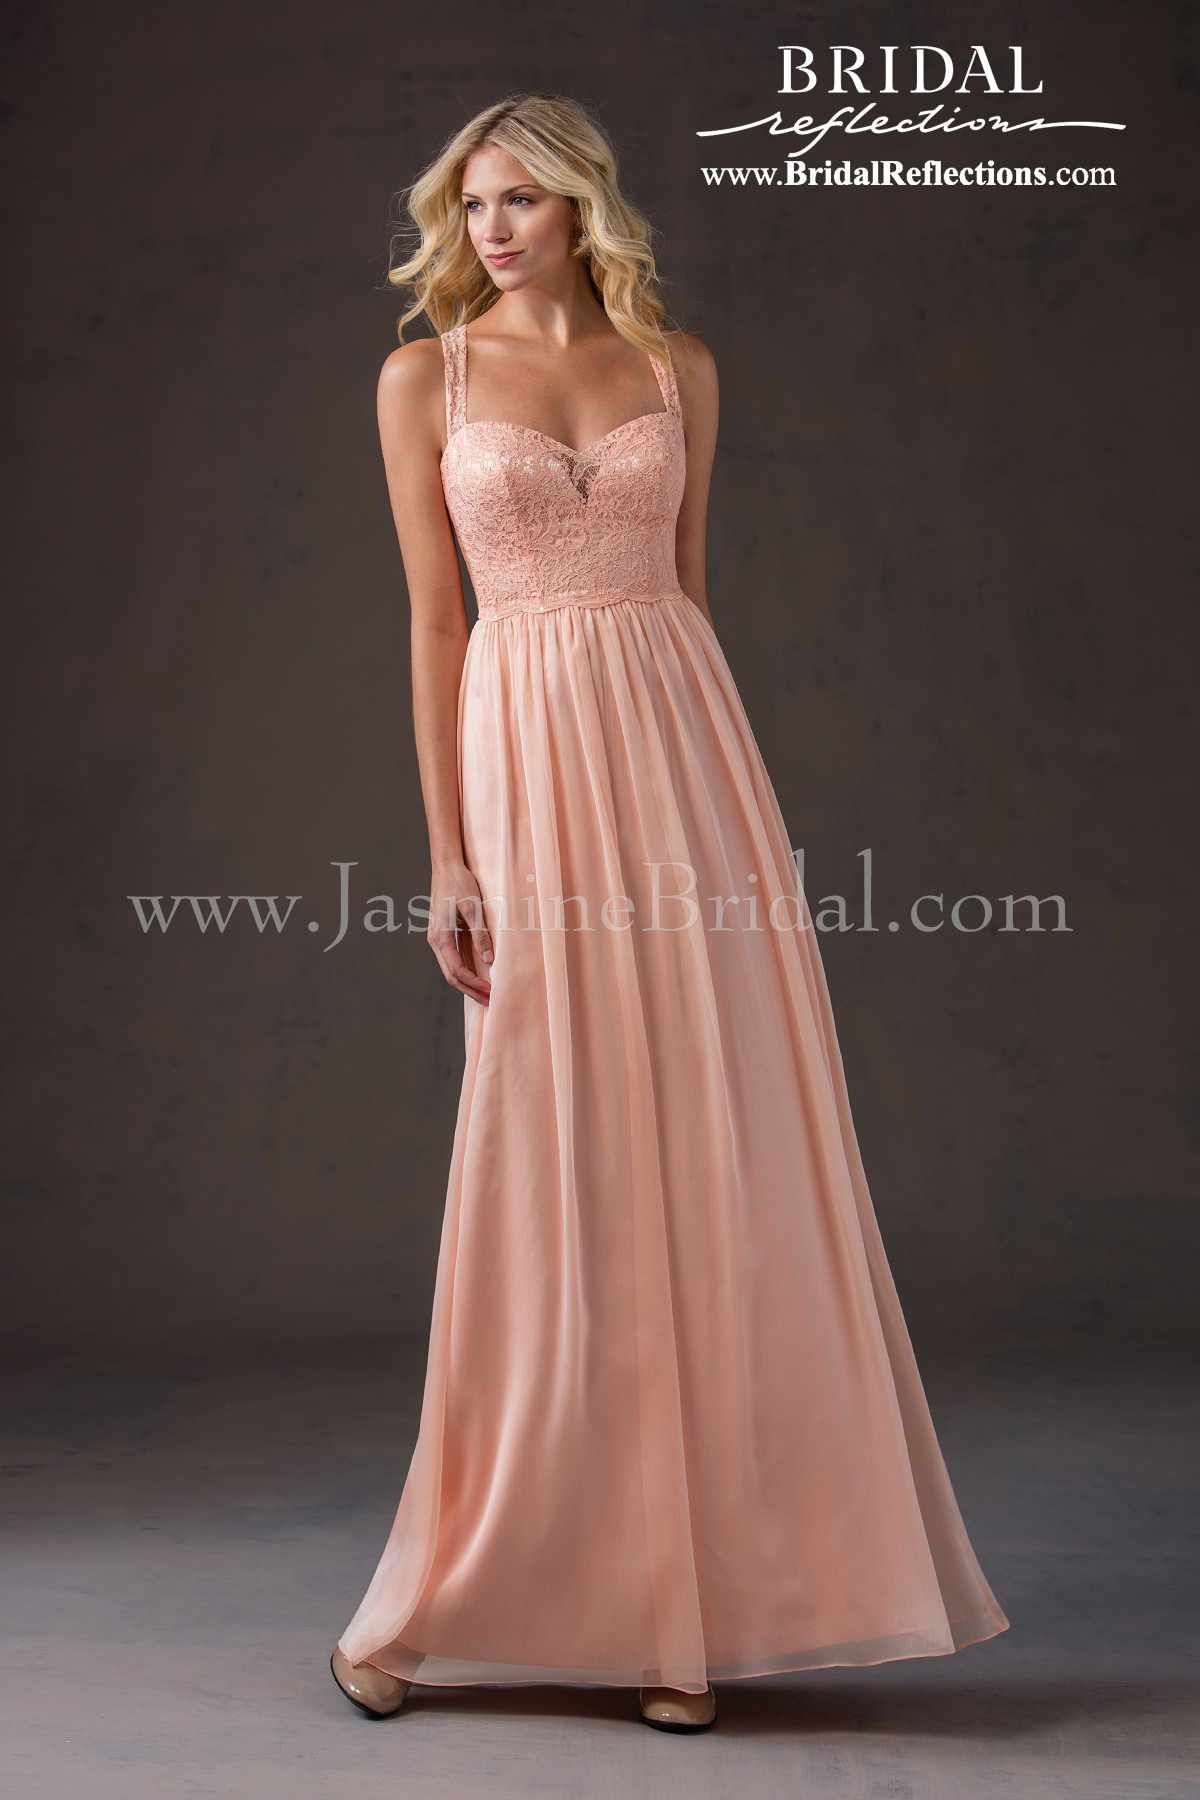 Belsoie by Jasmine Bridesmaid Dresses | Bridal Reflections